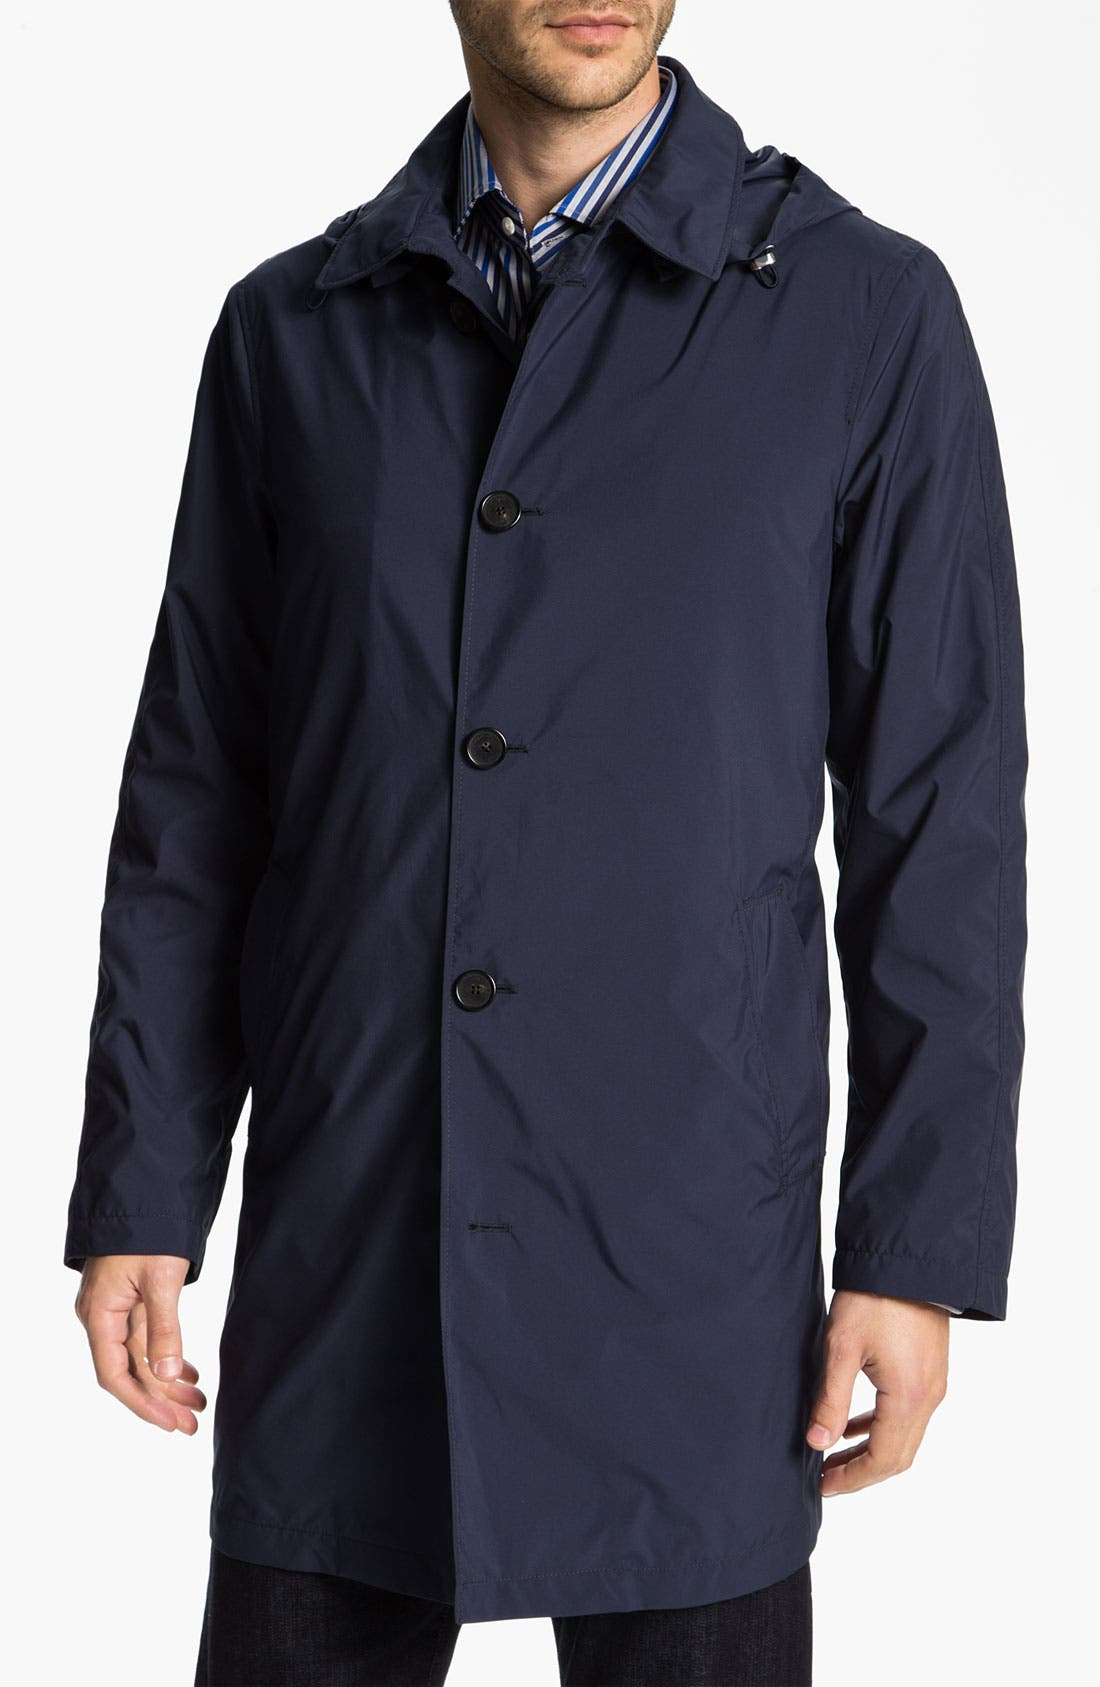 Alternate Image 1 Selected - Allegri 'City' Hooded Raincoat